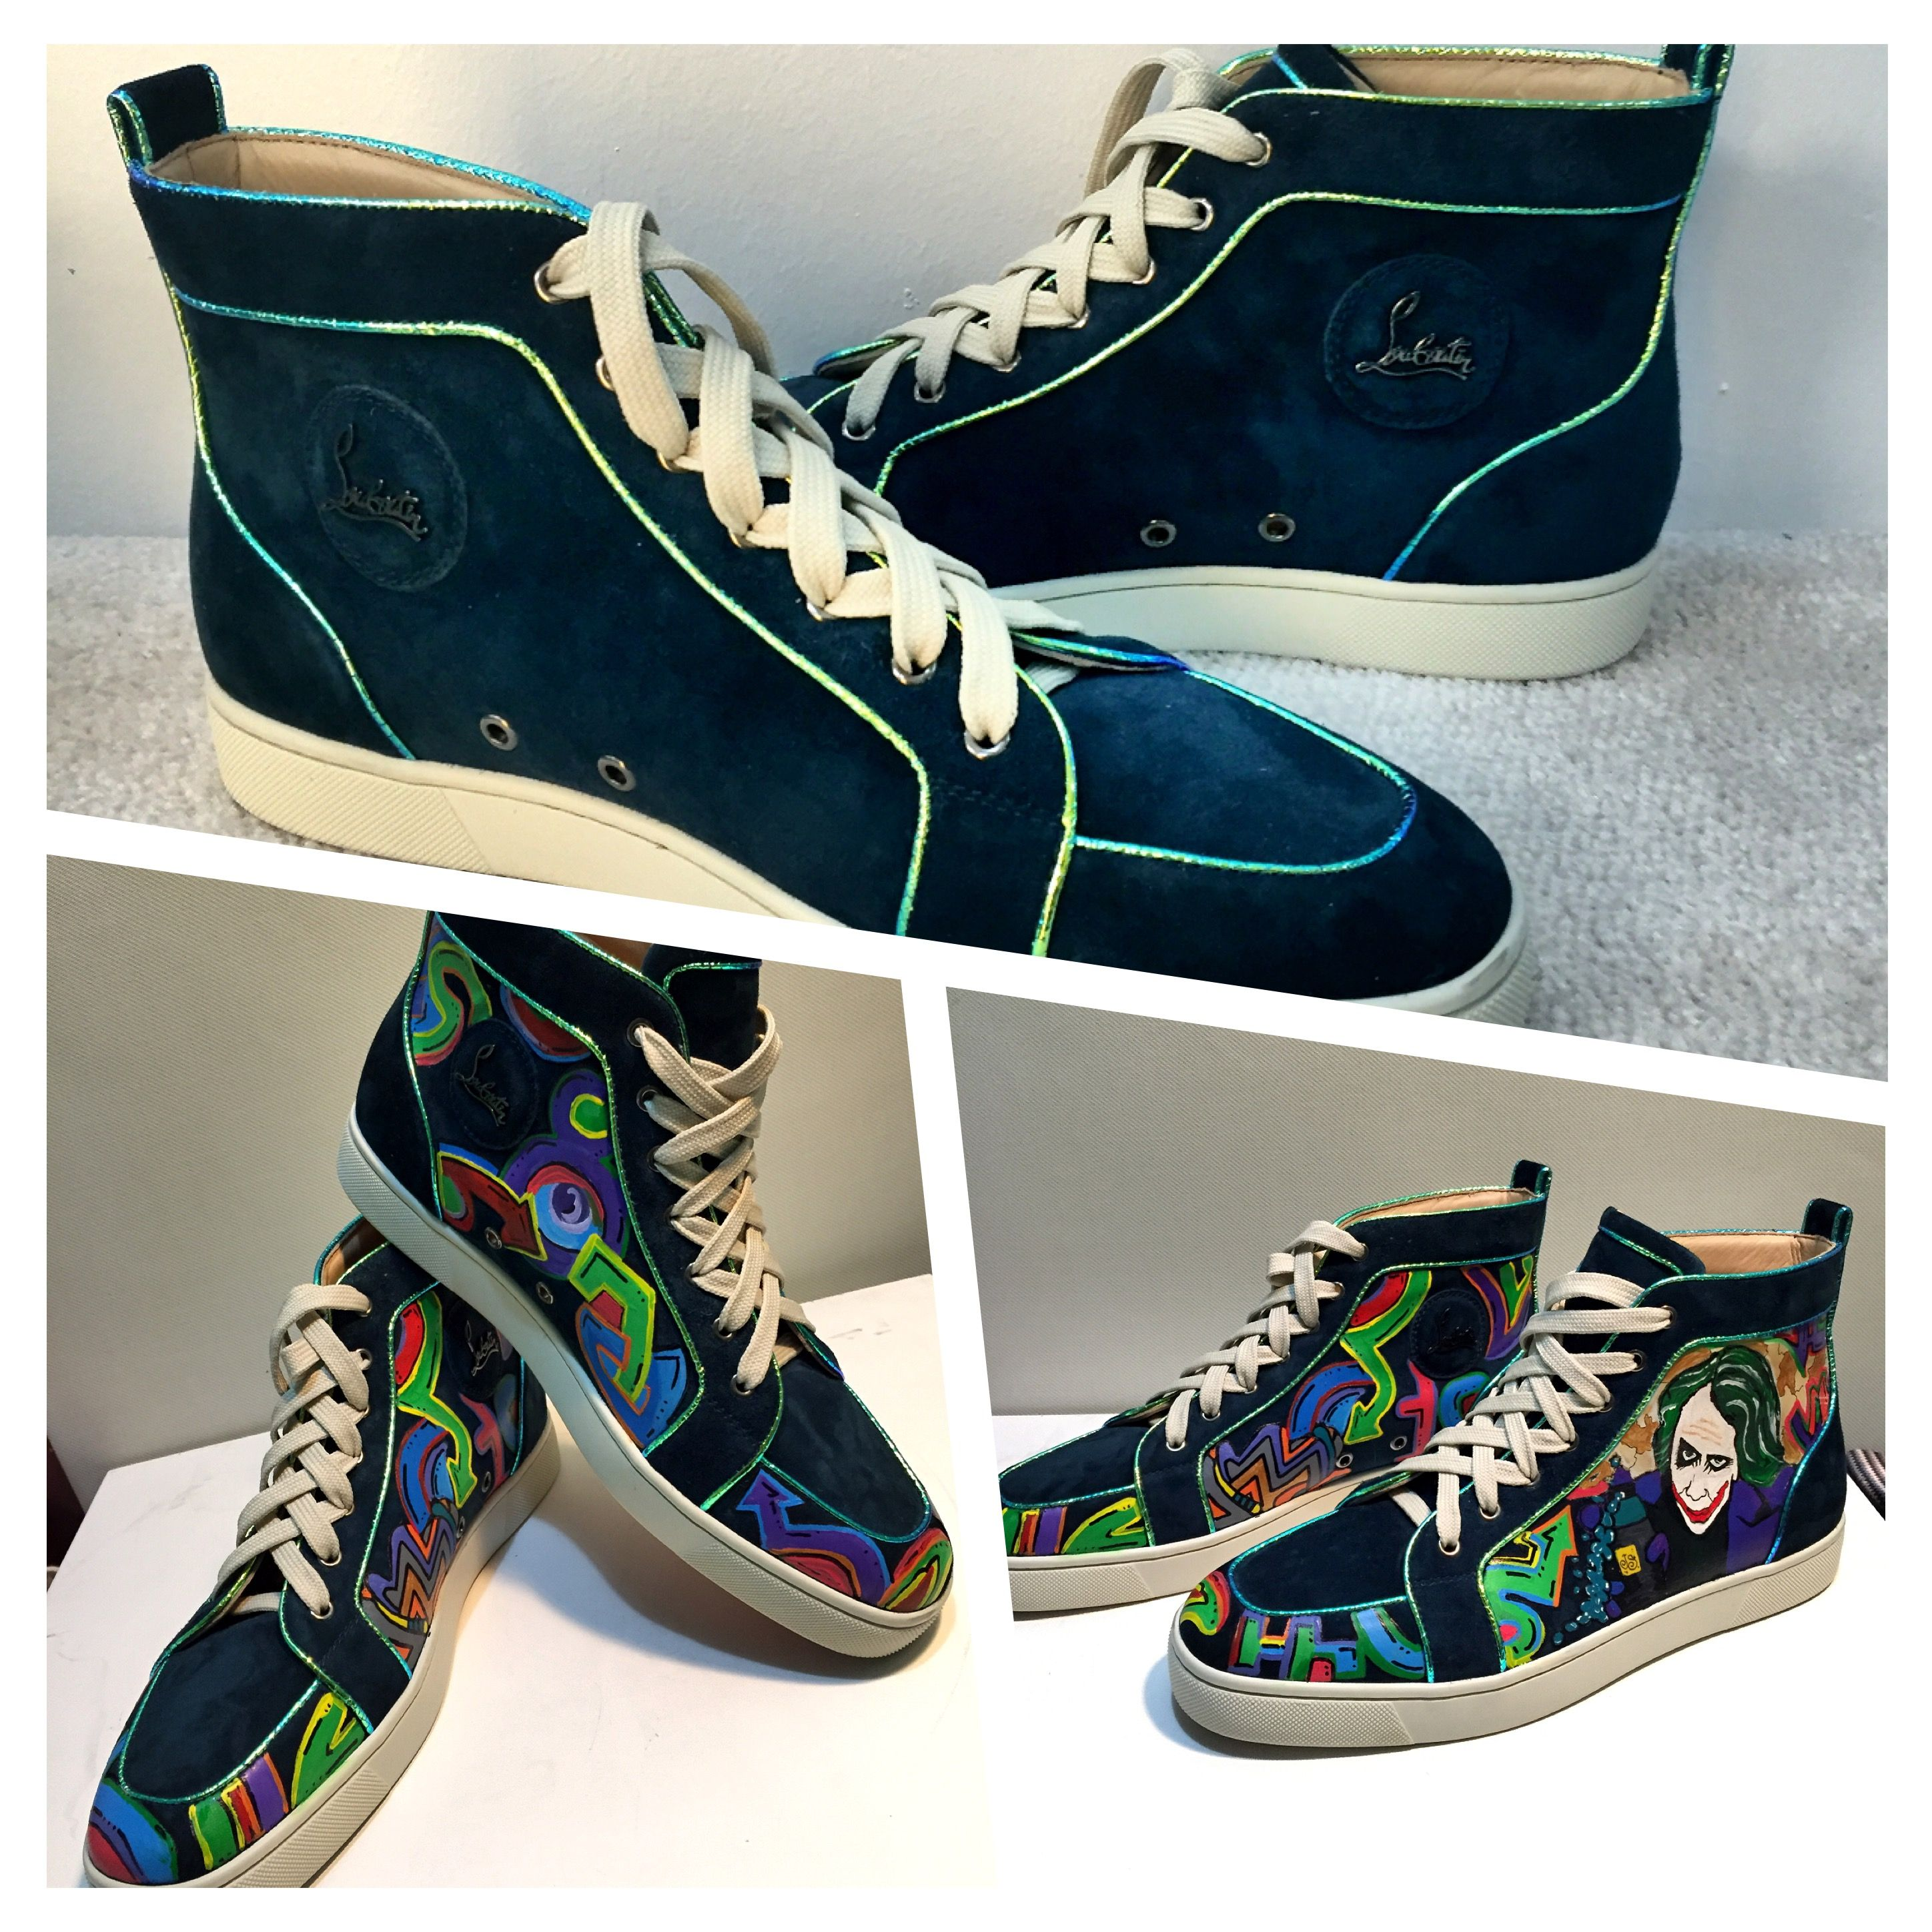 6bc647731c3 Christian Louboutin Customized shoes.. Street art inspired with joker and  clown.